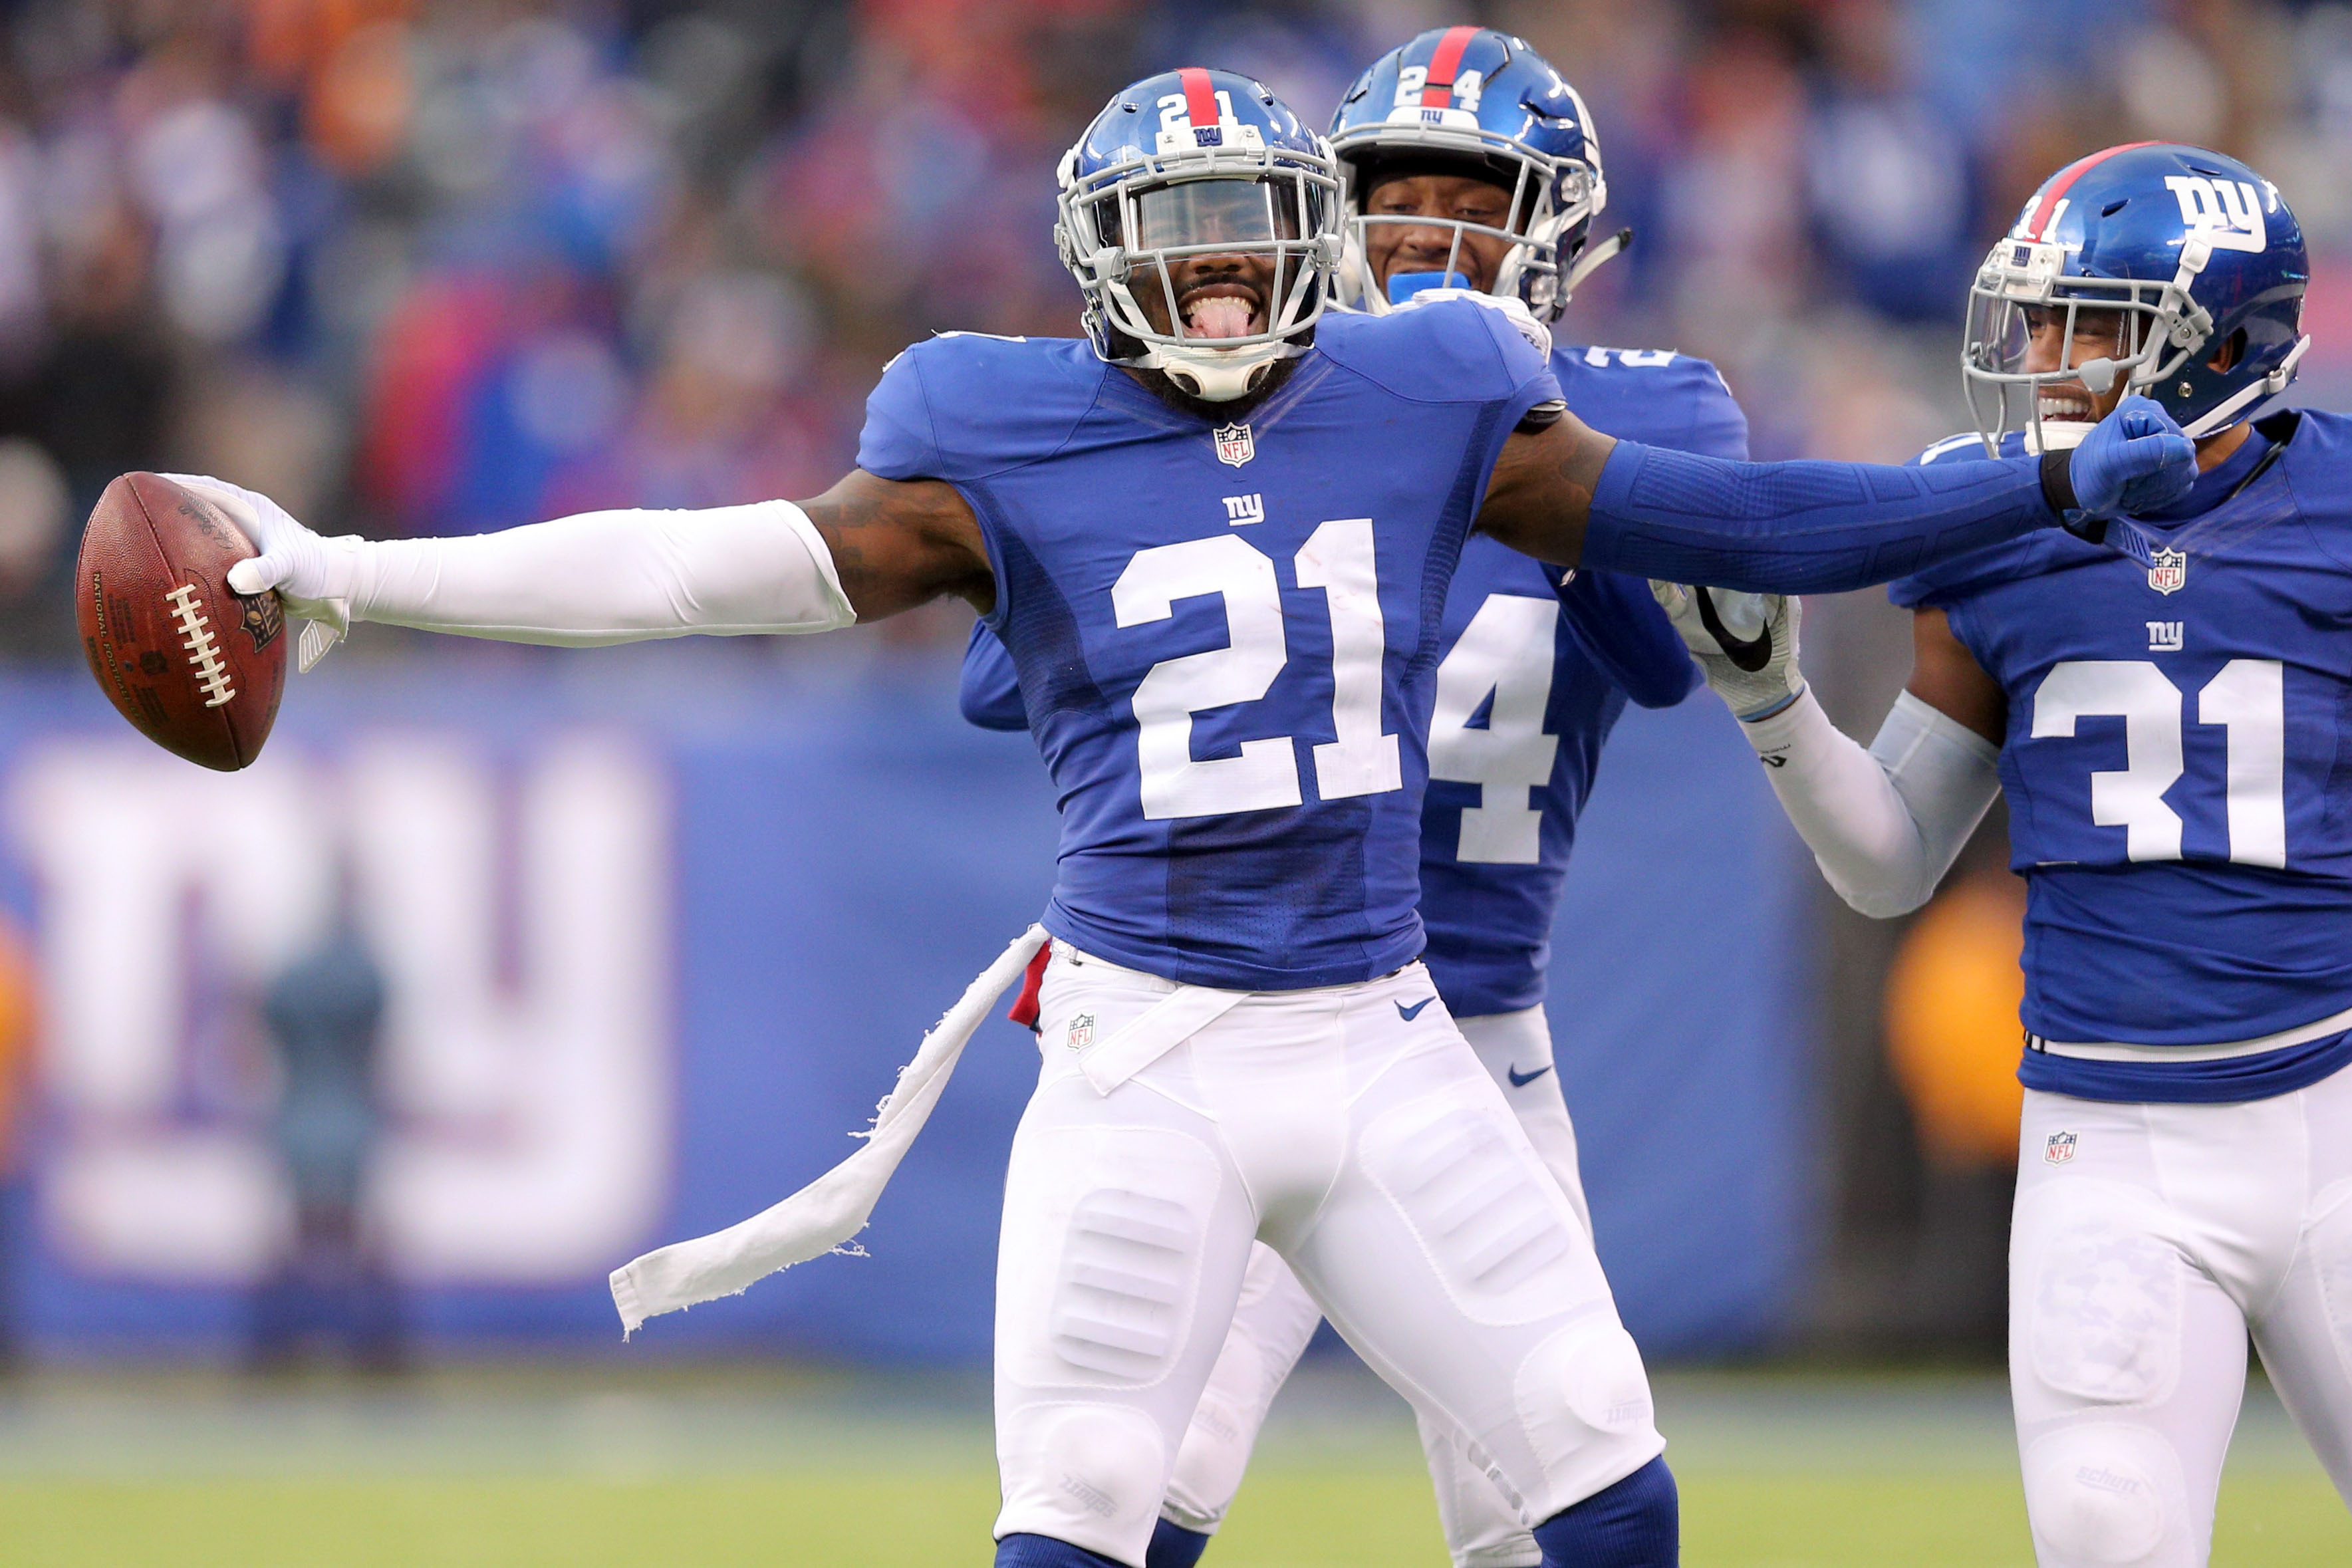 New York Giants S Landon Collins furthers DPOY case during Week 11